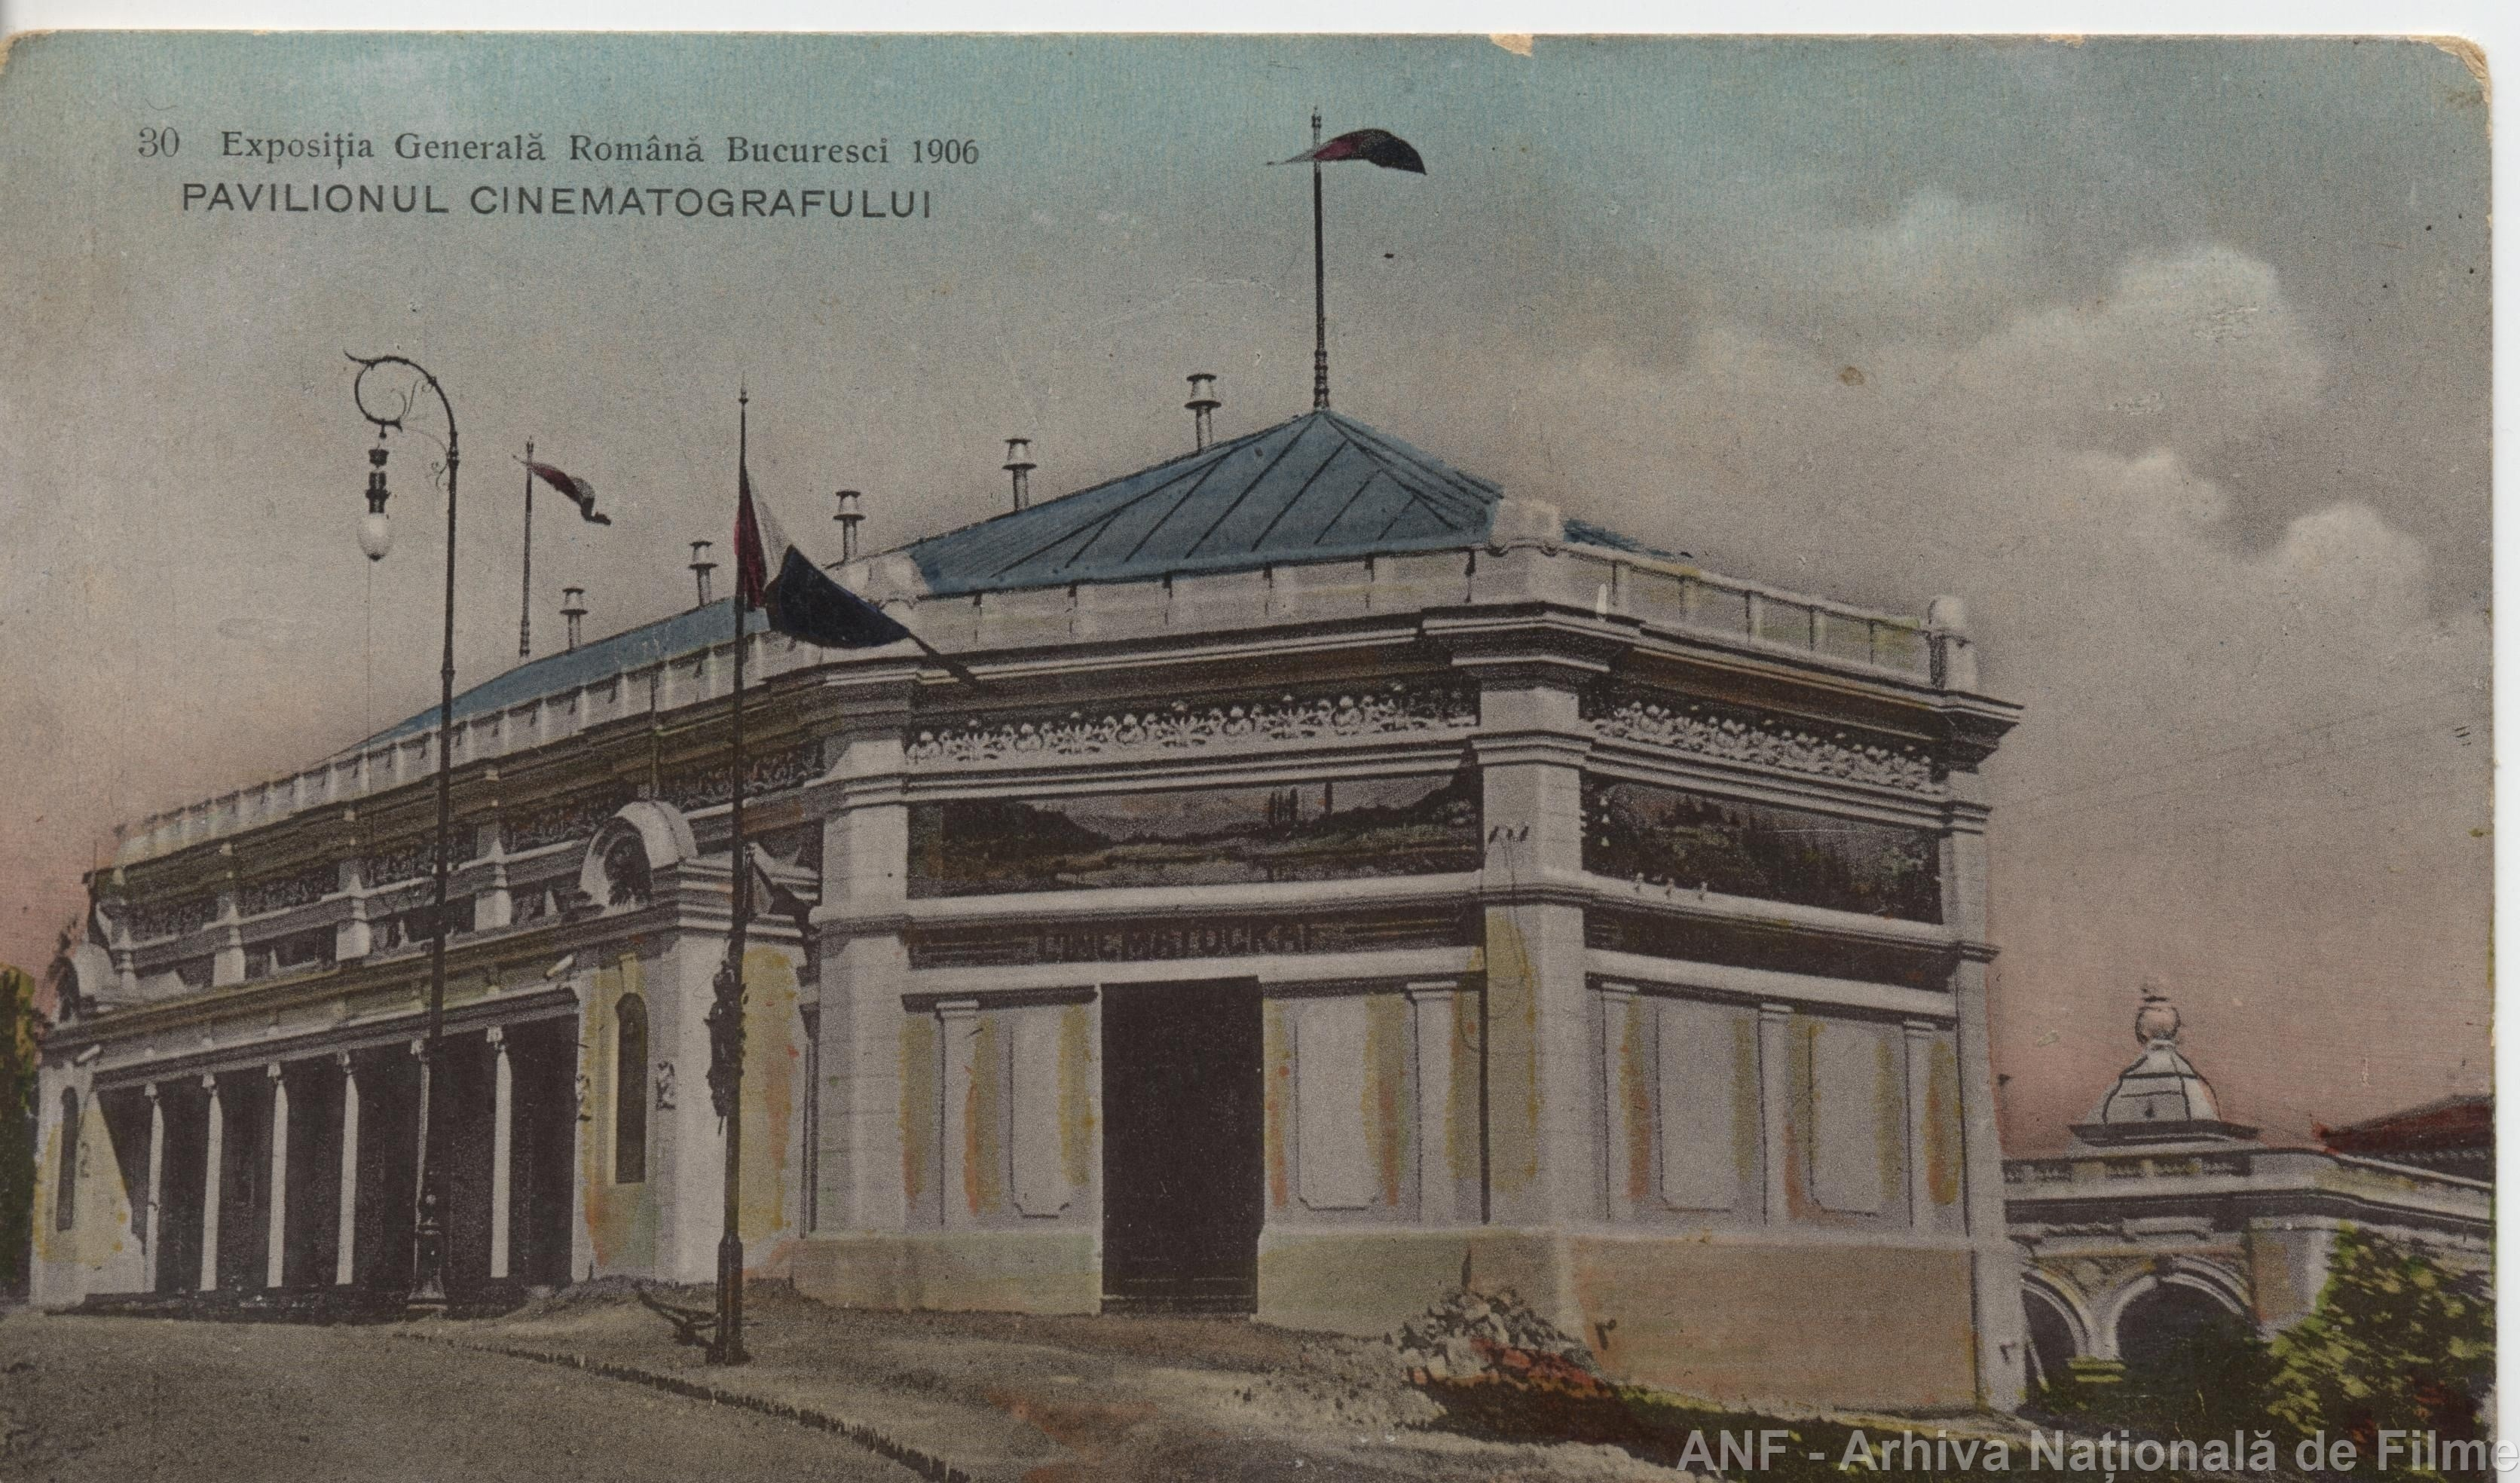 Cinema pavilion at the Romanian General Exhibition in Bucharest in 1906, © Arhiva Naţională de Filme